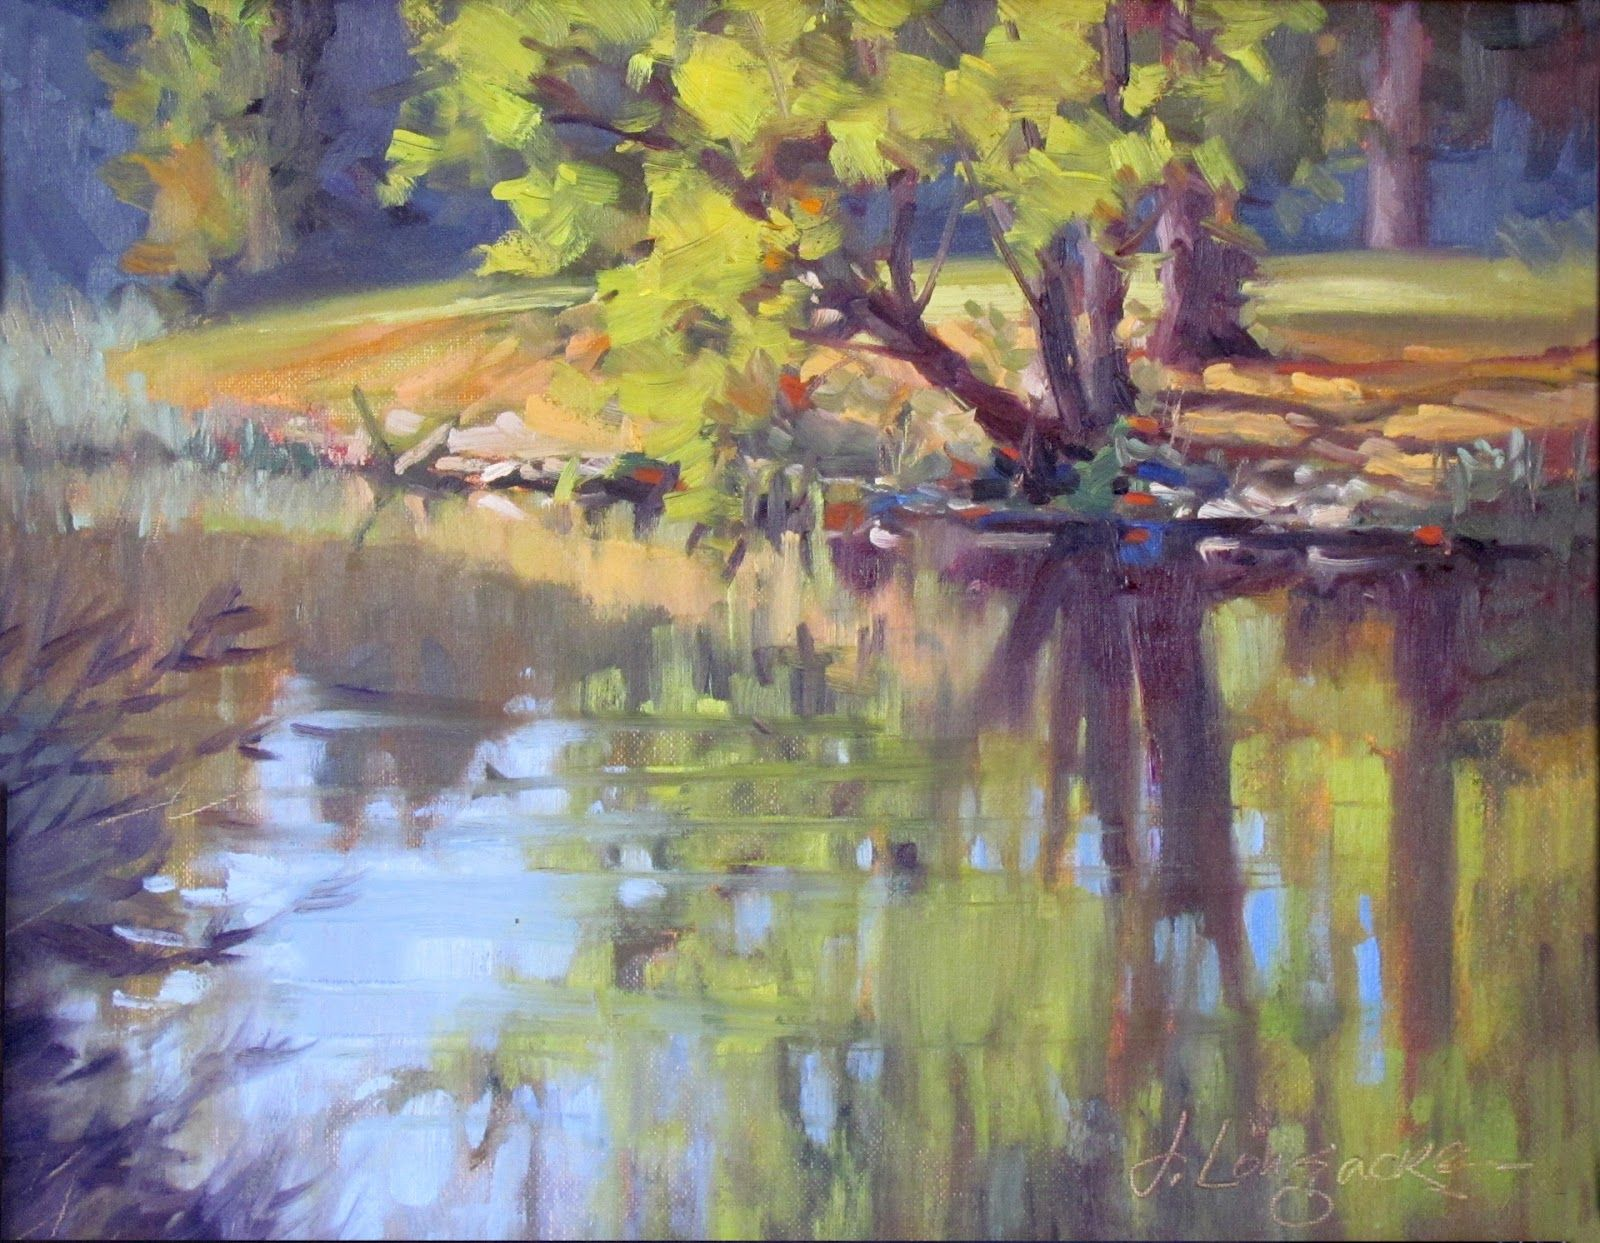 Morning Reflection Plein Air Landscape Oil Painting By Texas Modern Impressionist Jimmy Longacre Plein Air Landscape Painting Landscape Artist